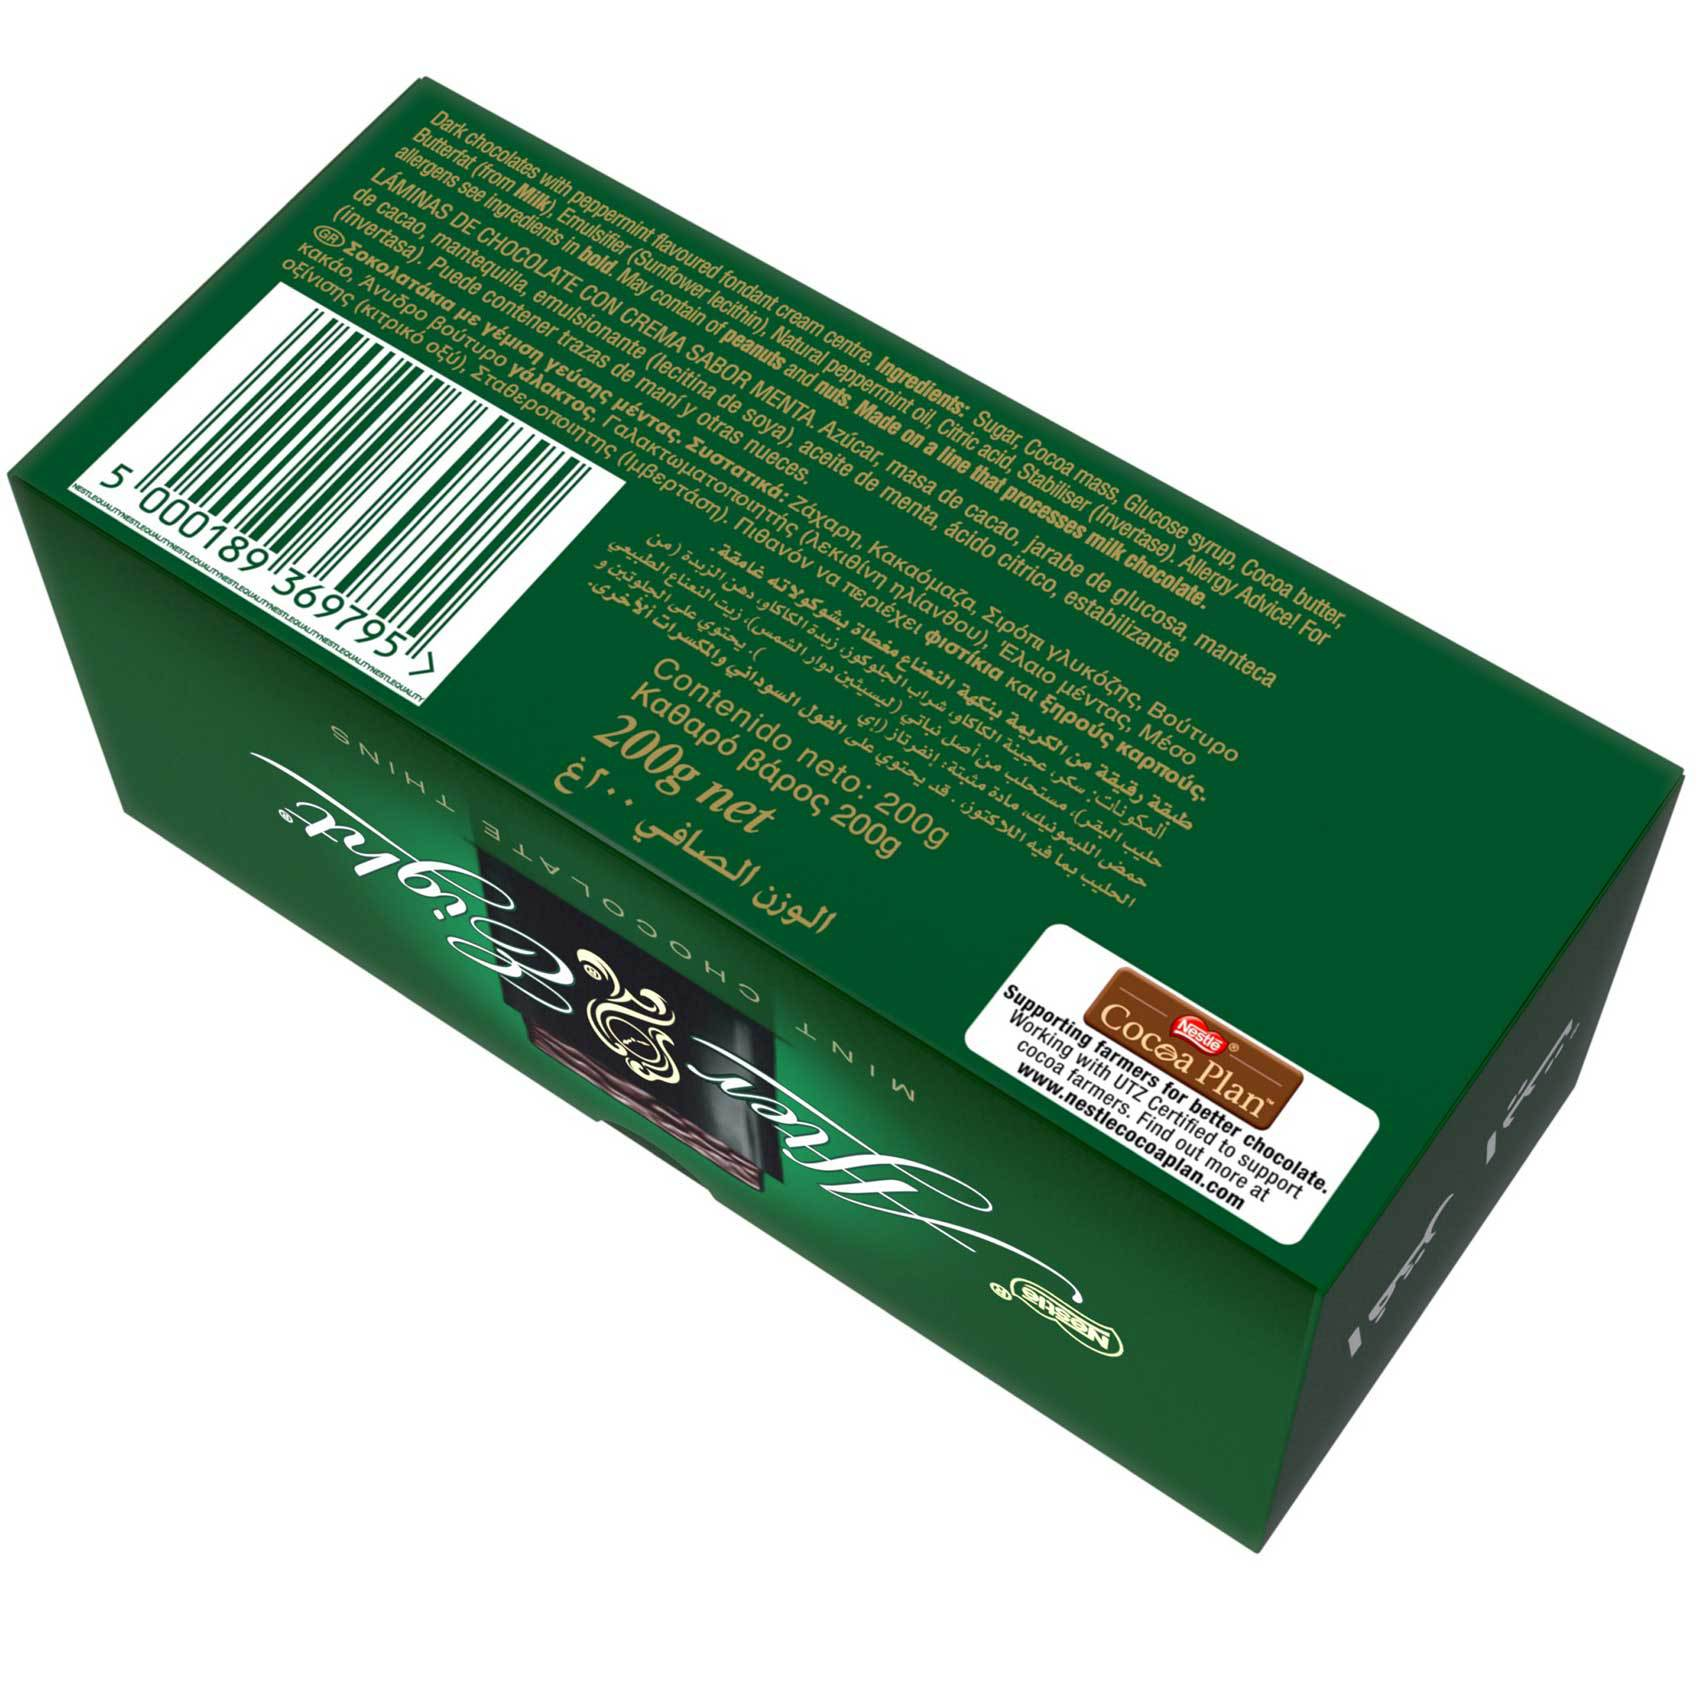 NESTLE AFTER EIGHT 200GR